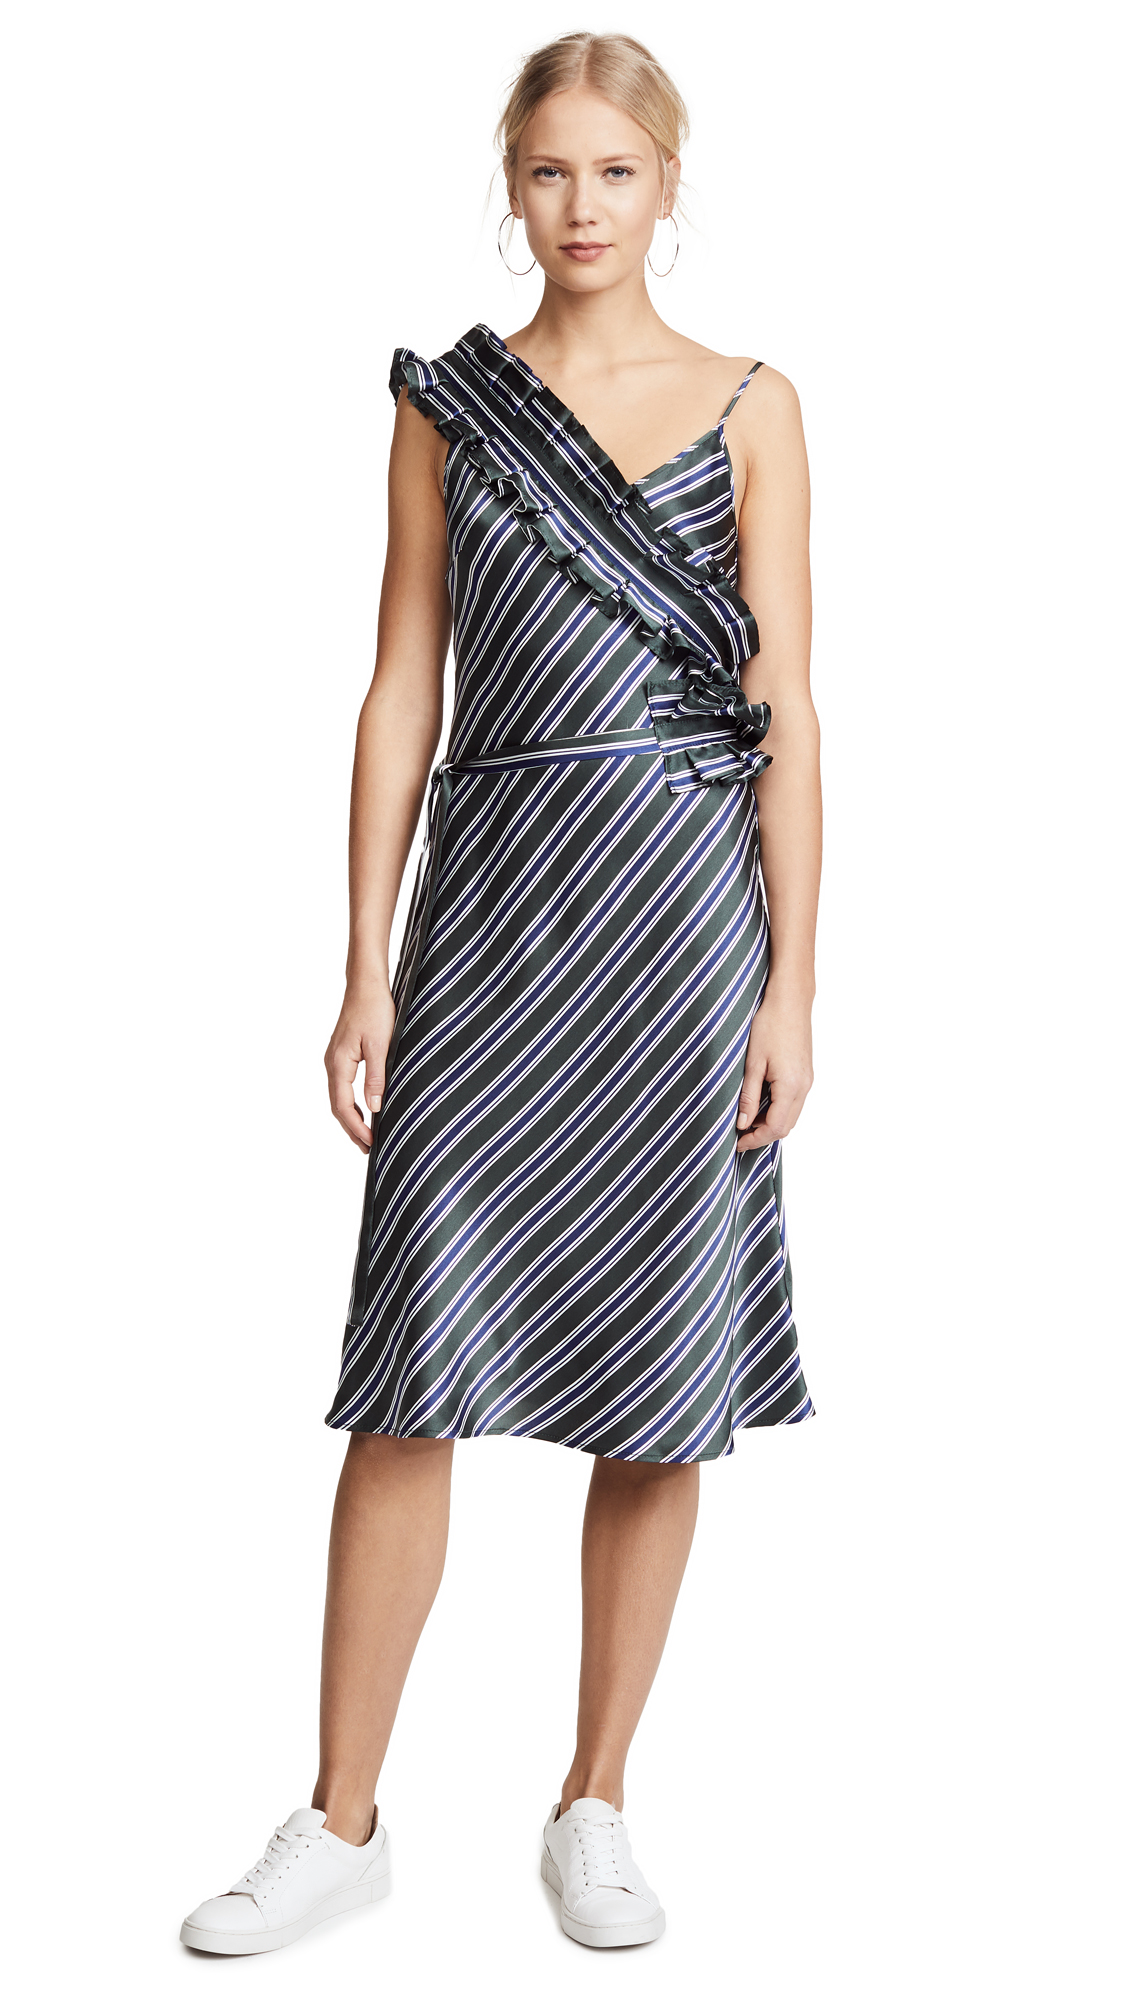 Maggie Marilyn I Need You by My Side Dress - Pine Stripe